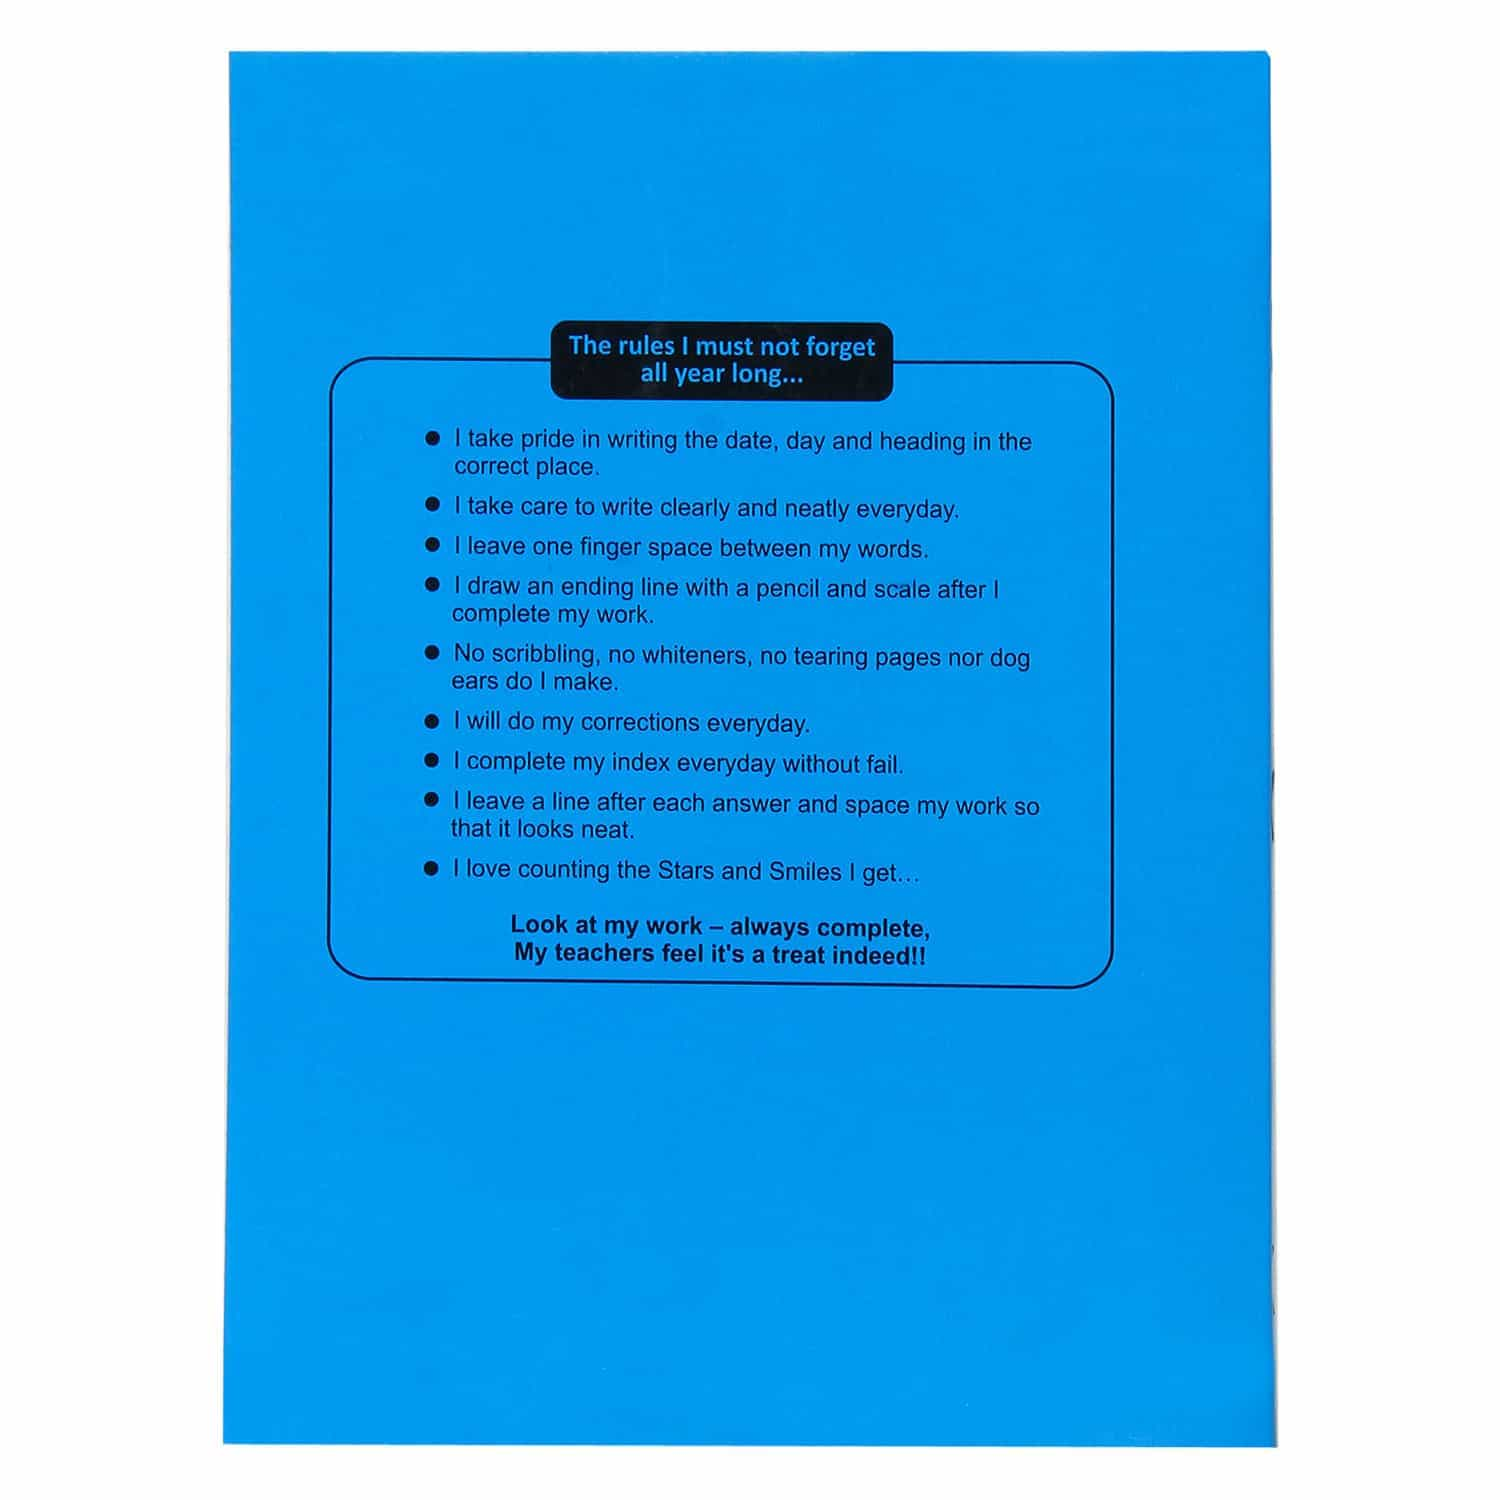 Amity Blue Small Square Notebook - 96 Pages